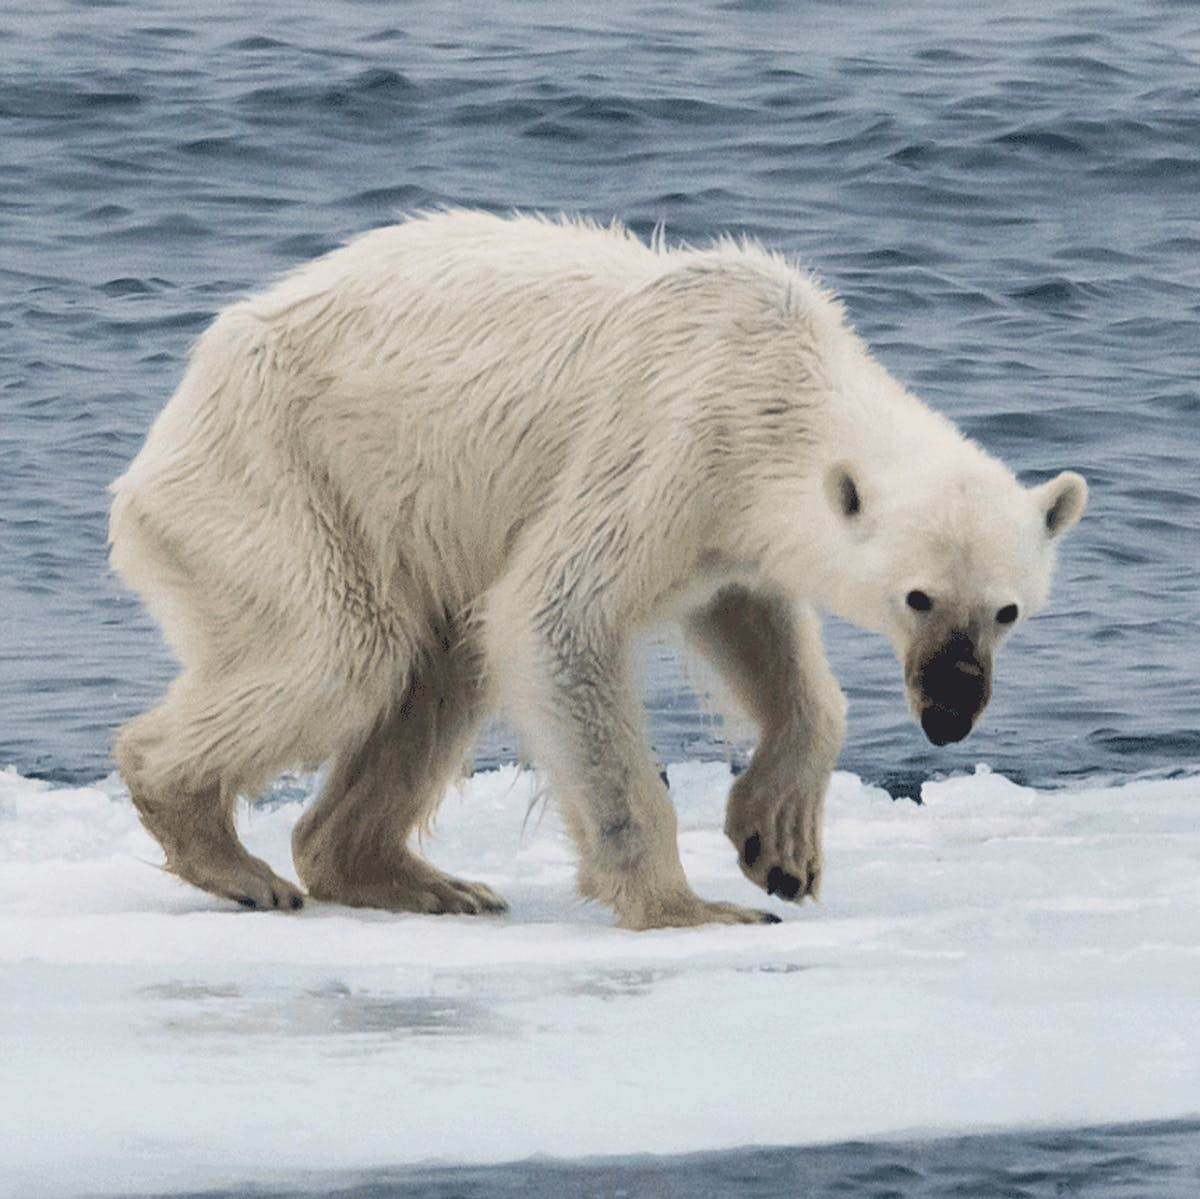 Nature docs like 'Our Planet' have a starving polar bear problem